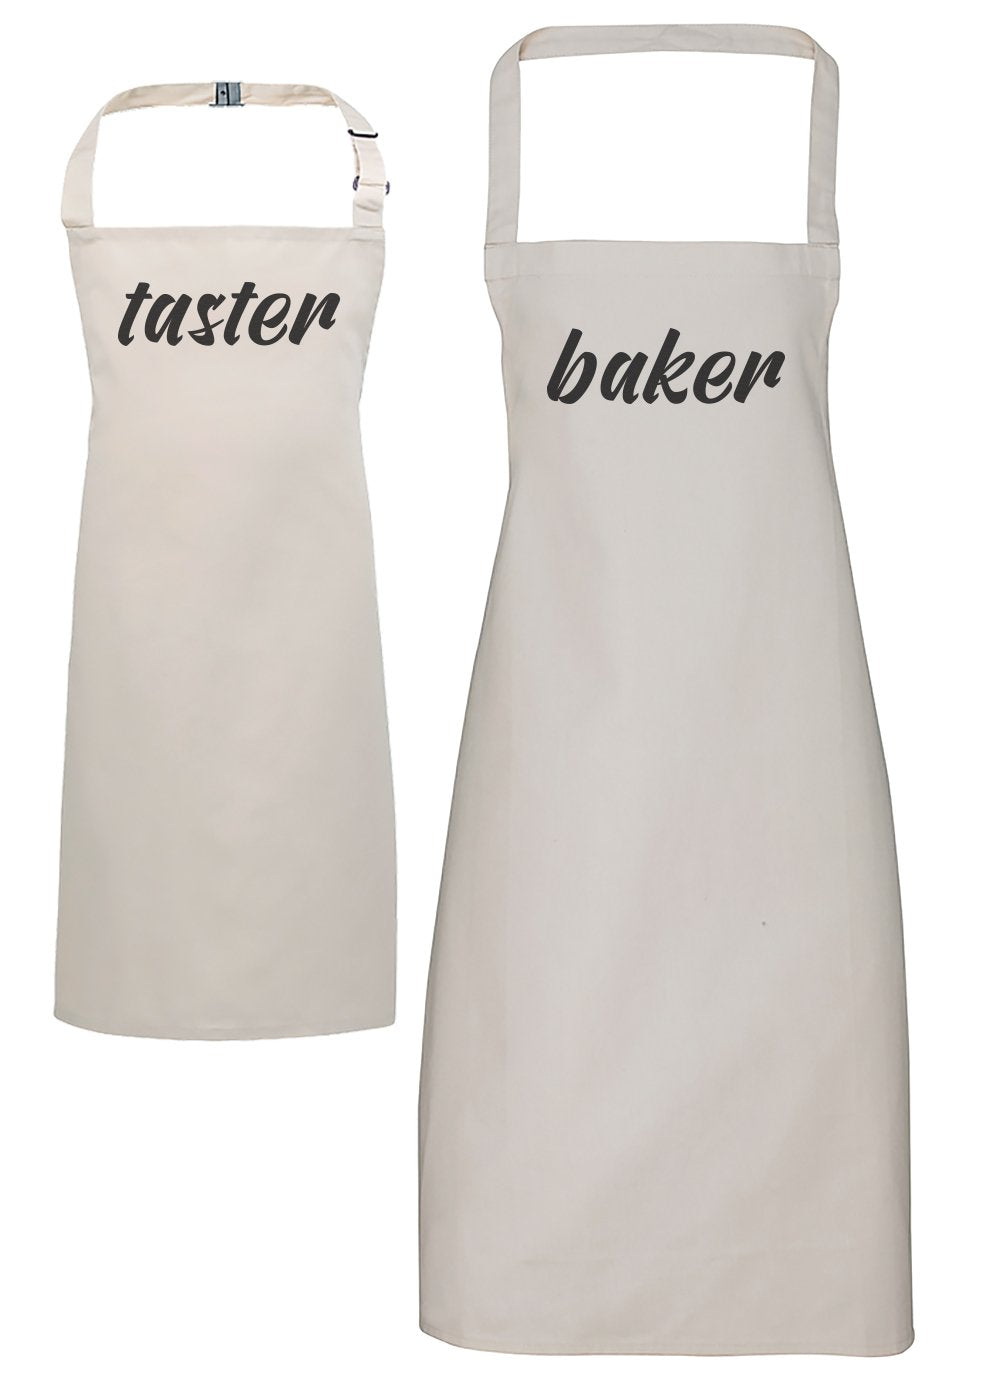 Baker & Taster - Adults & Kids Apron Set